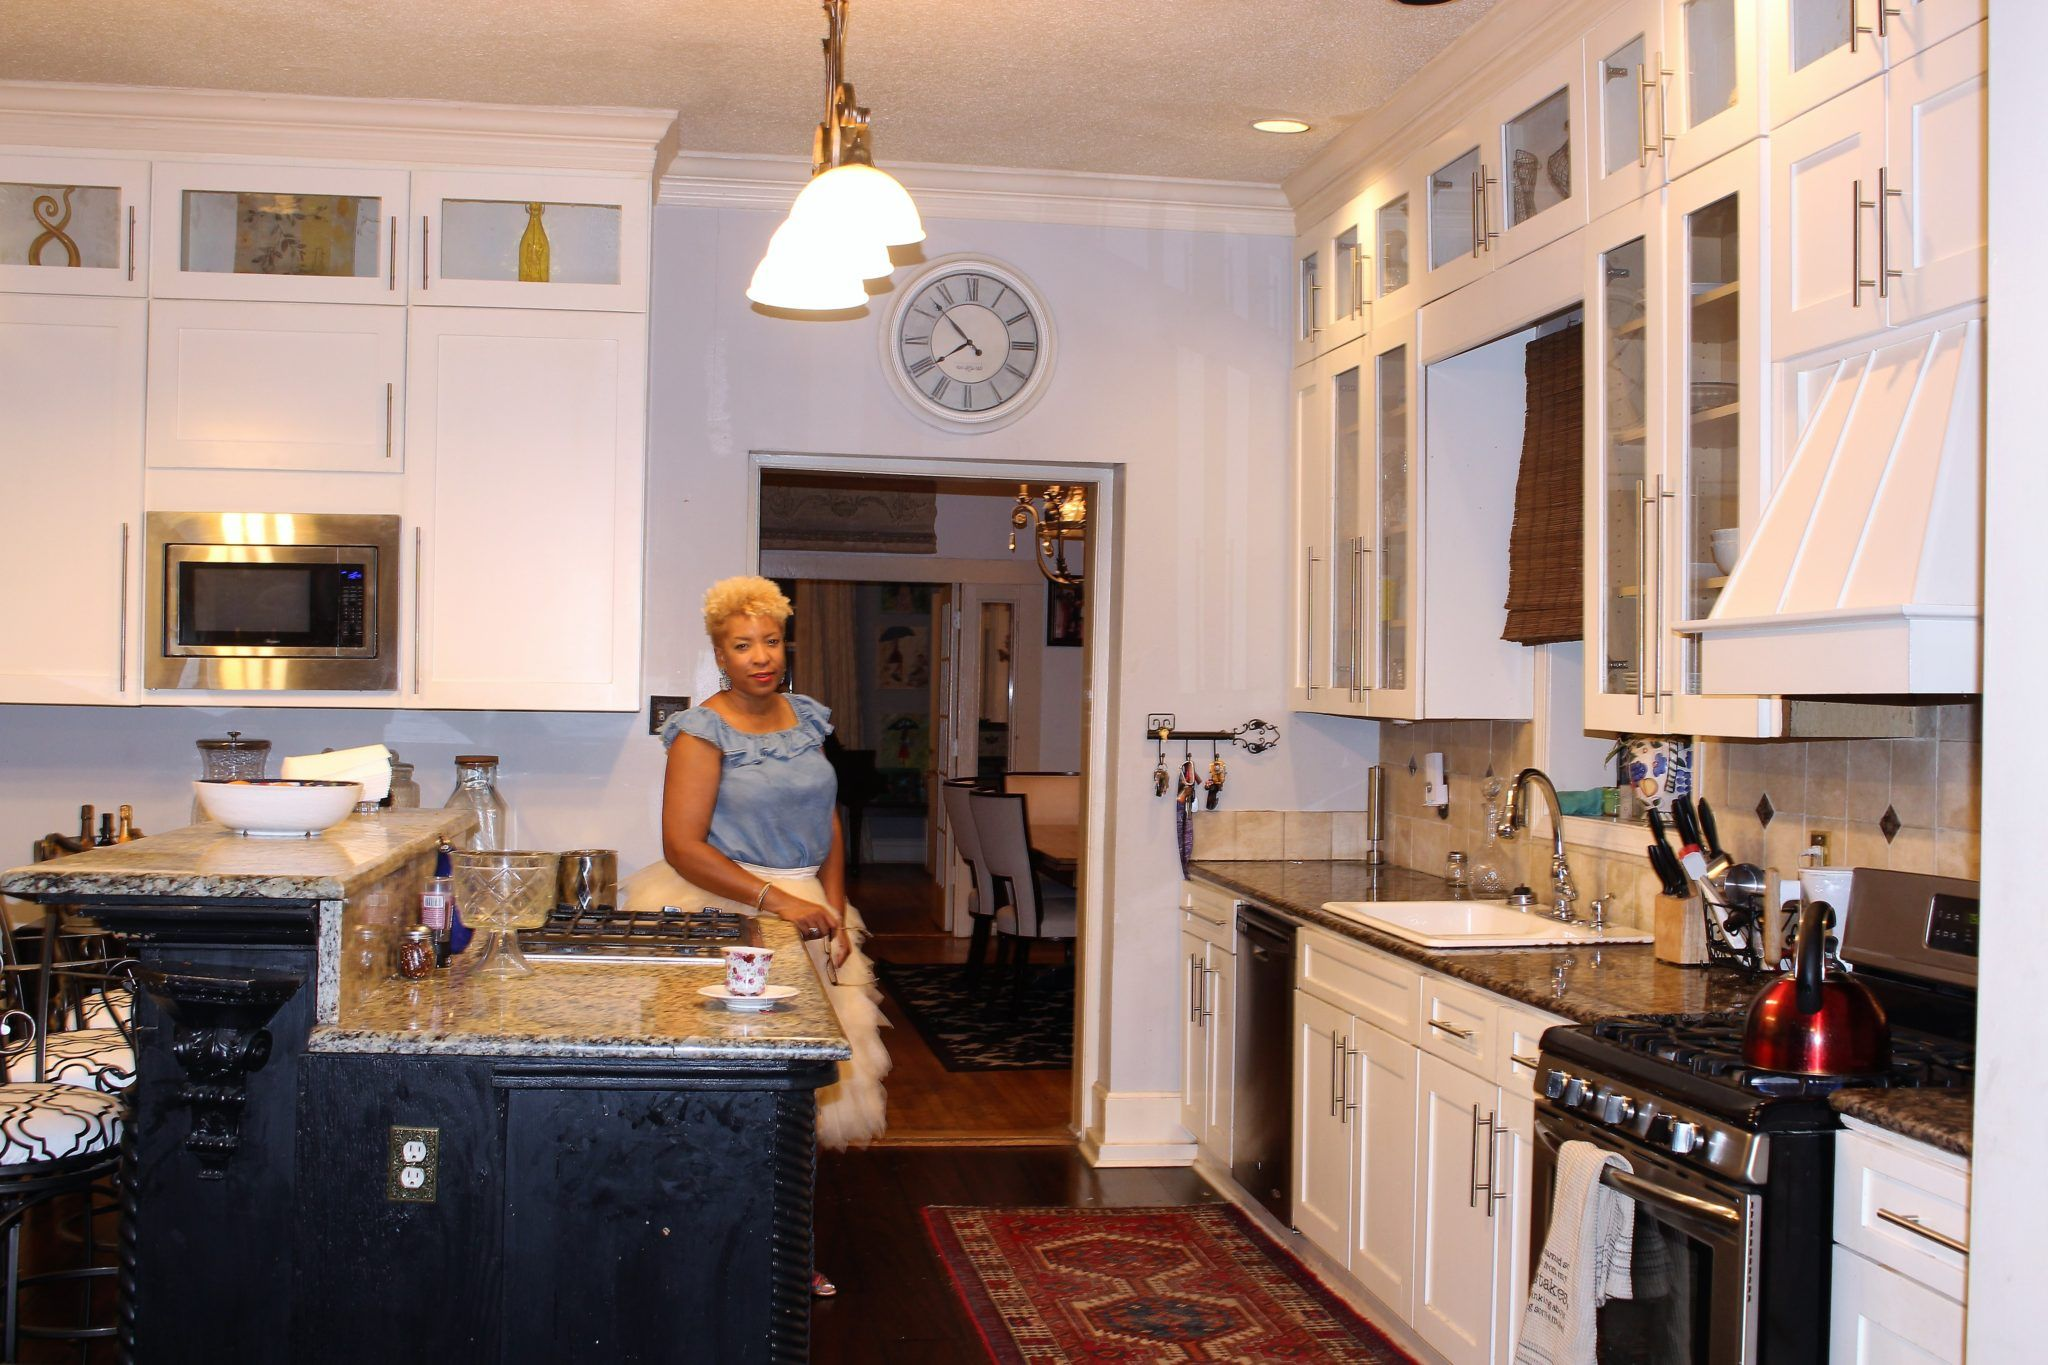 Memphis Tn Home Tour With With Modern Rustic Style Black Southern Belle In 2020 Modern Rustic House Tours Home